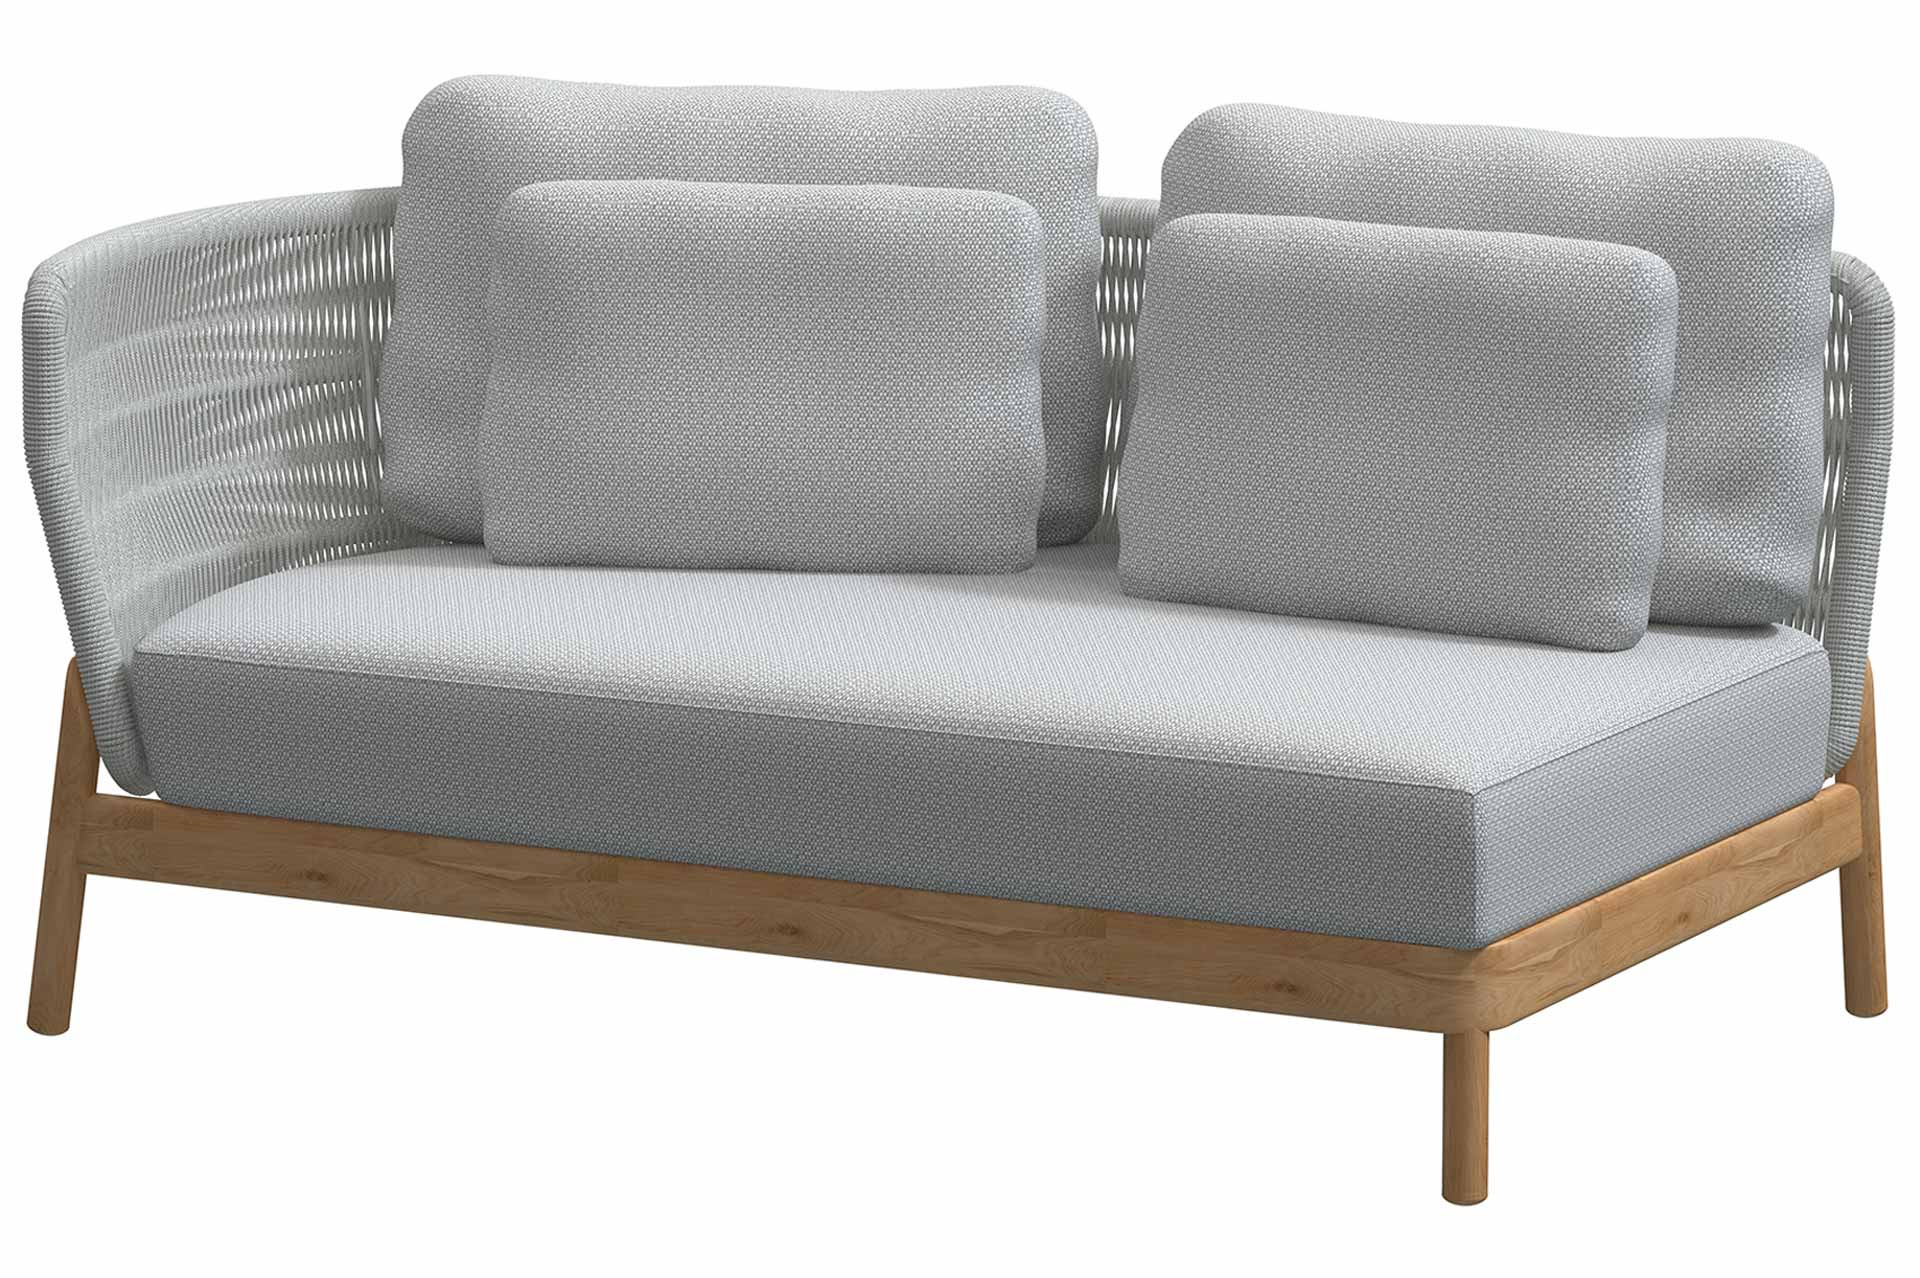 Avalon teak modular 2 seater bench right arm Frozen with 5 cushions